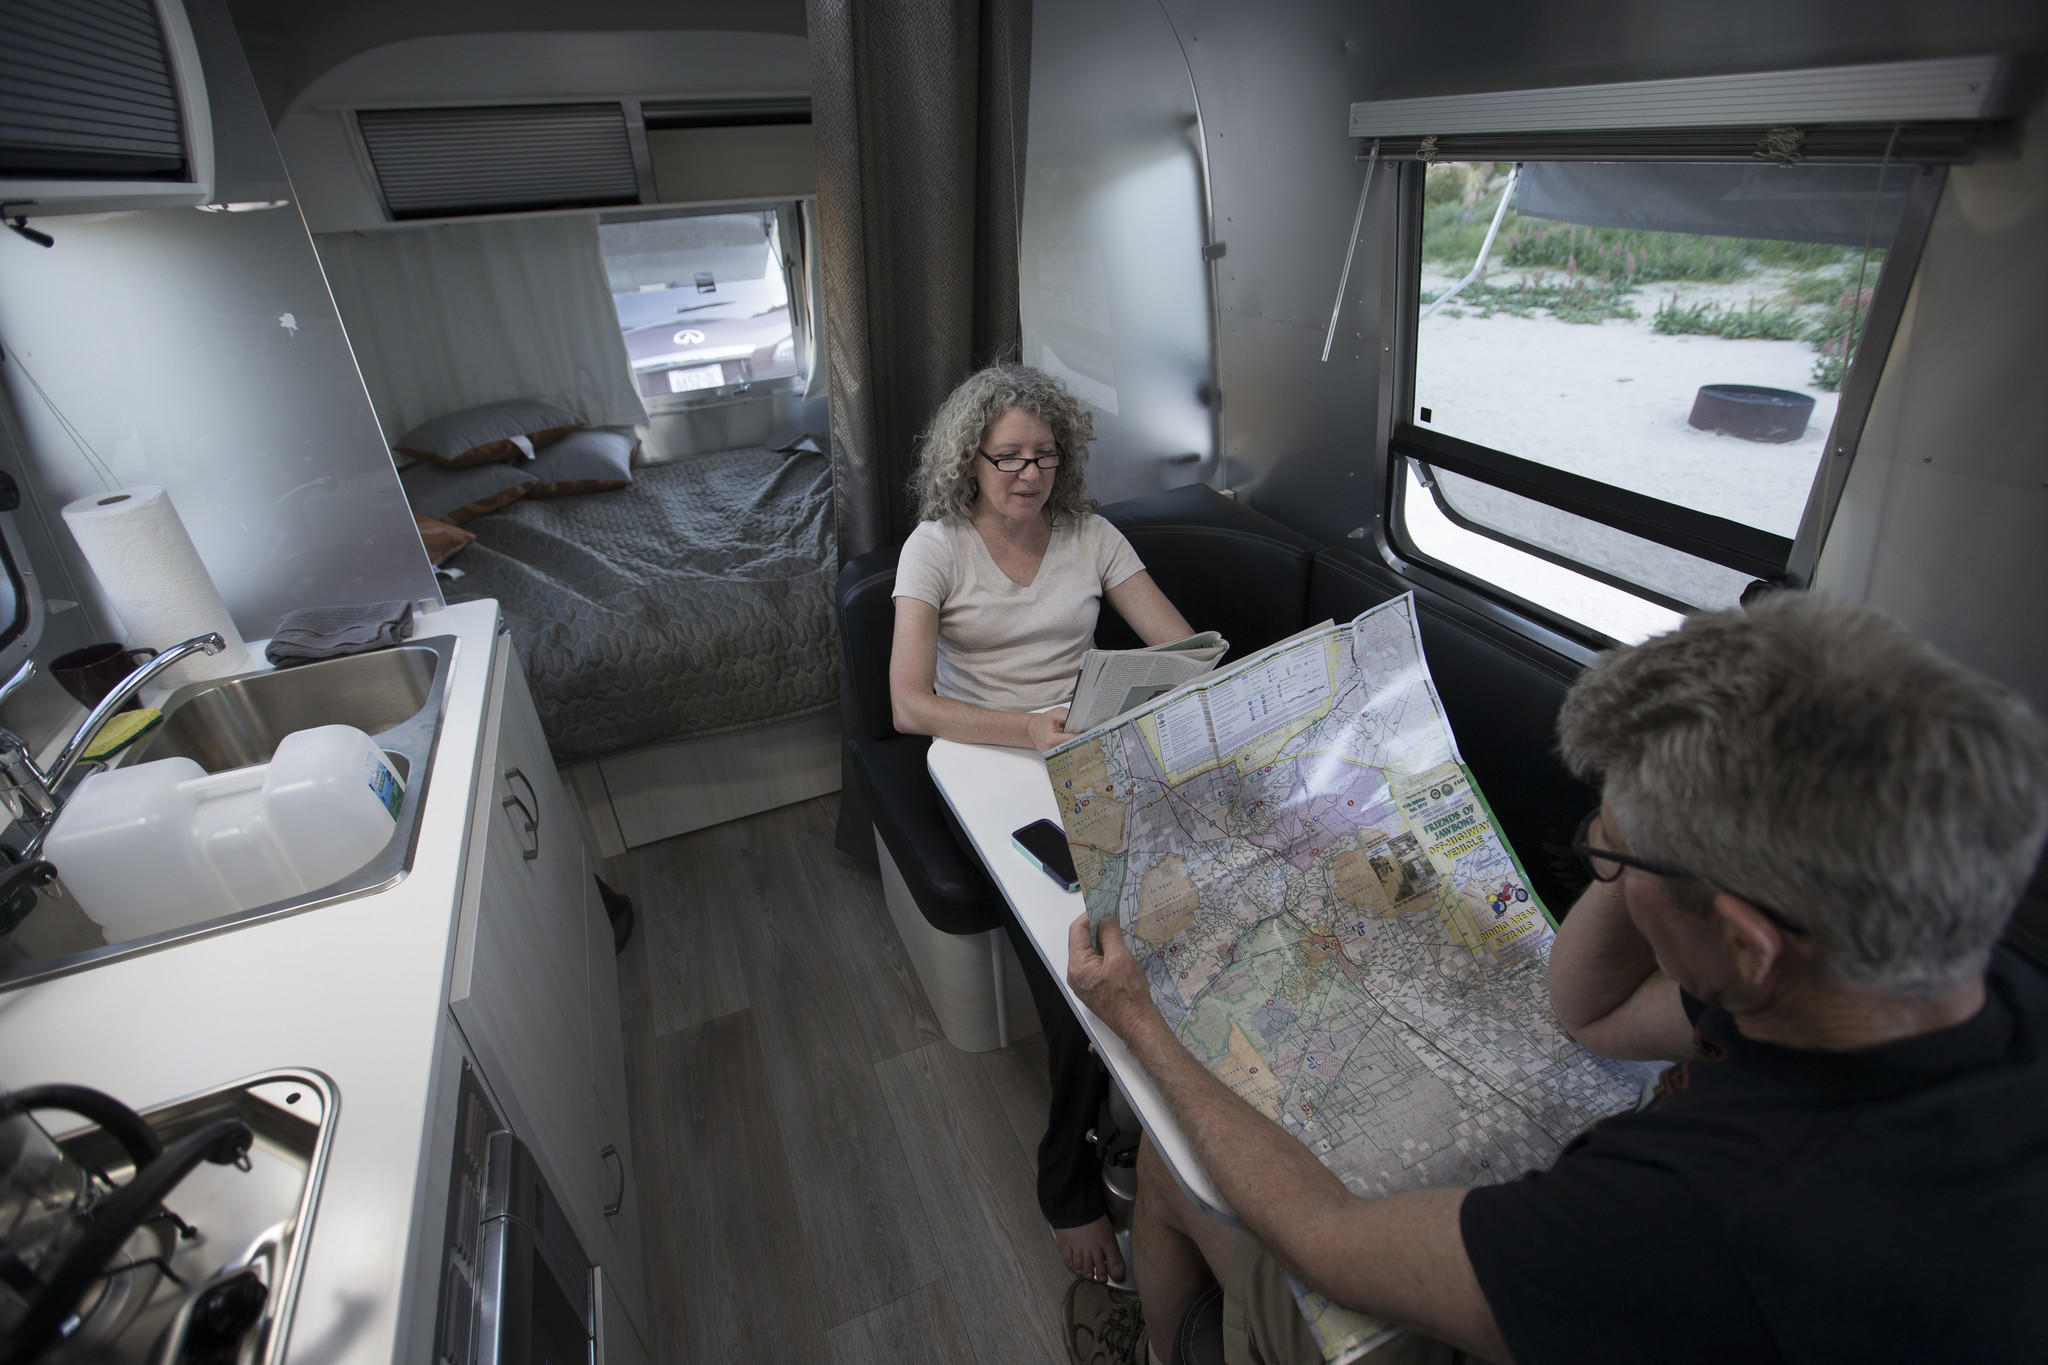 Charles And Julie Fleming Check Out A Map While Camping In An Airstream Bambi Sport At